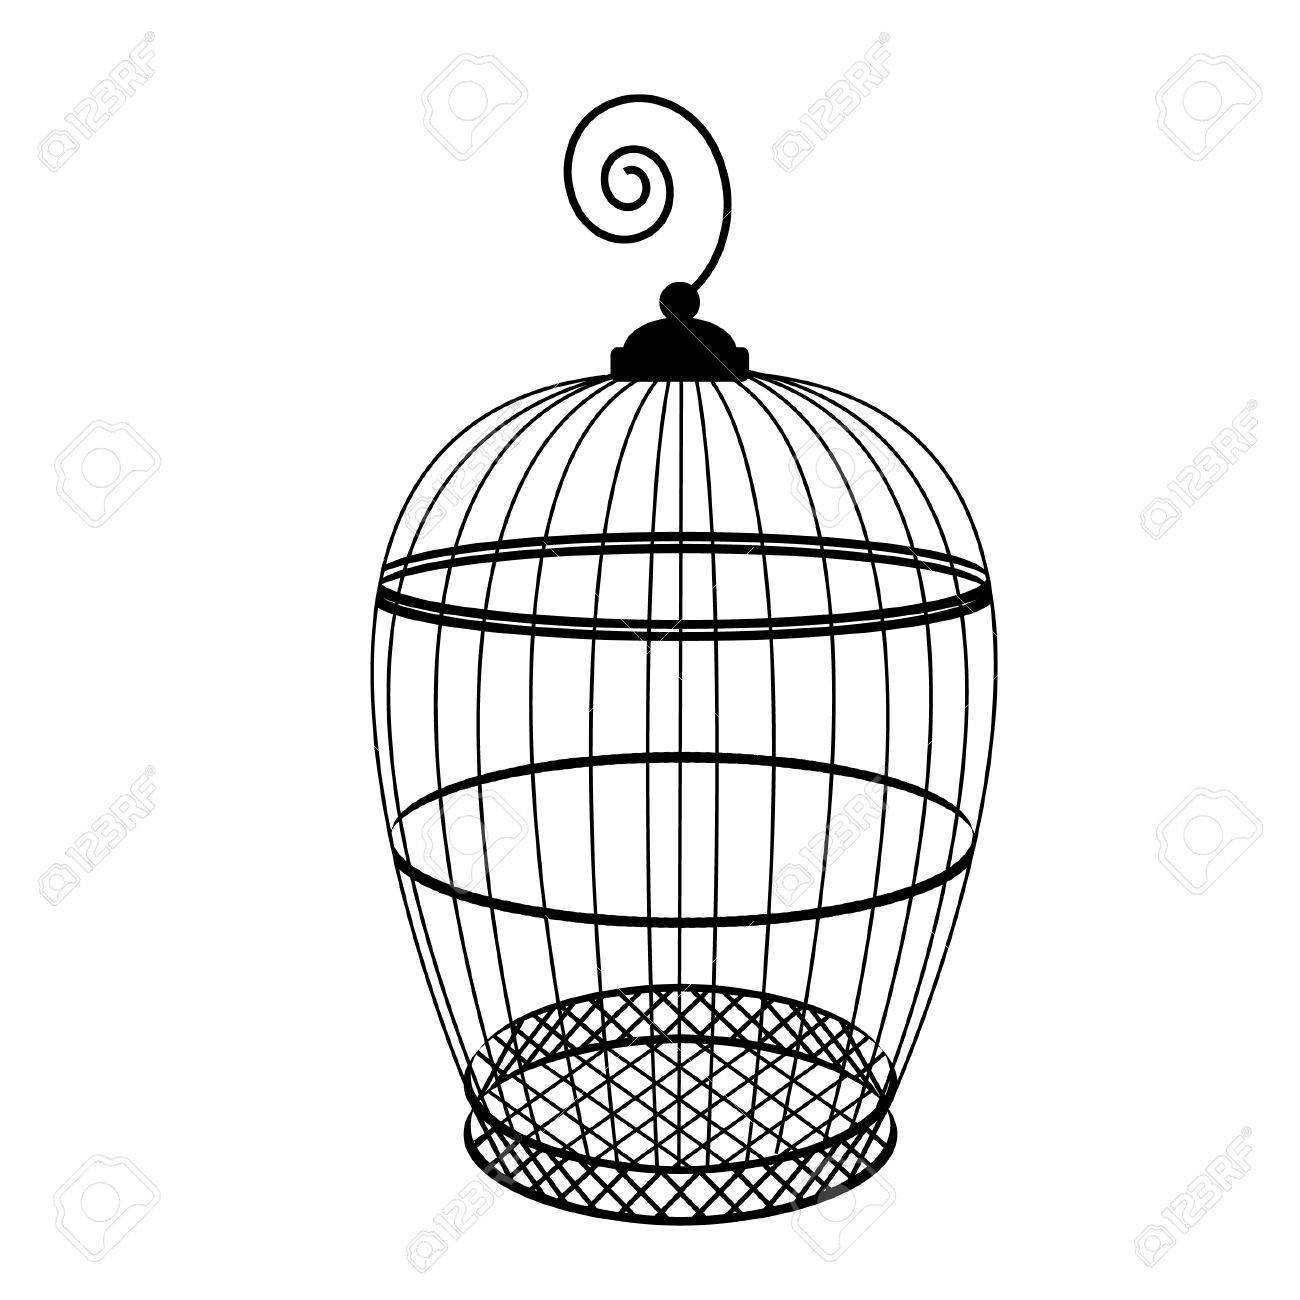 birdcage vector isolated bird cage silhouette vintage birdcage rh 123rf com vintage birdcage clipart free birdcage clipart free download